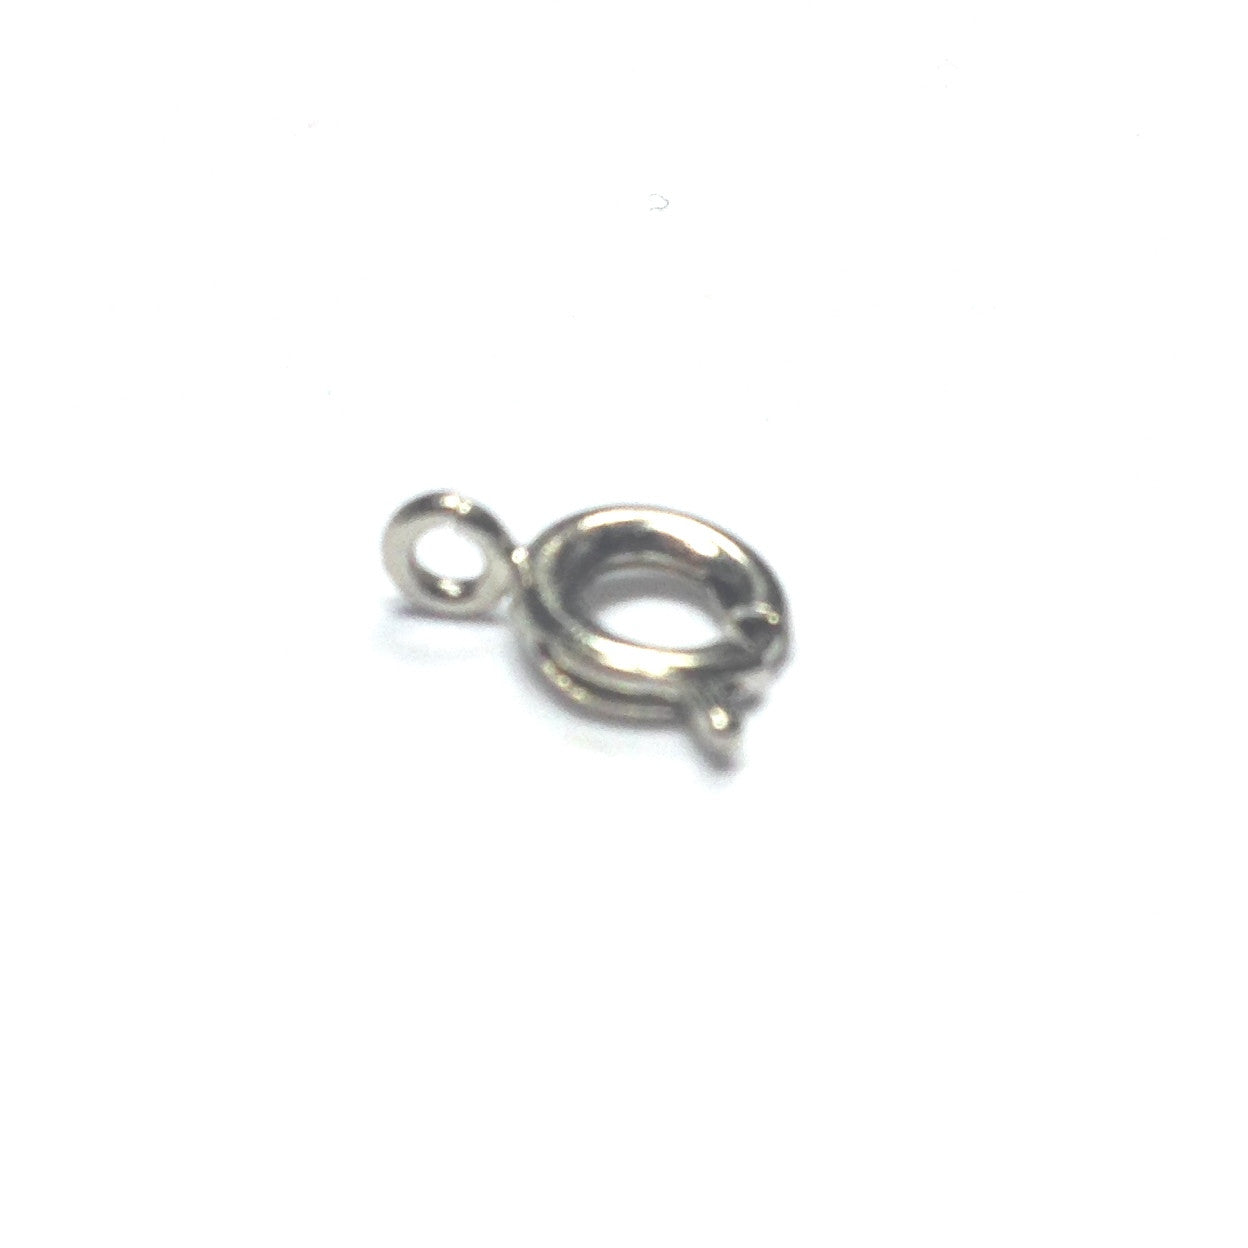 12MM Spring Ring Nickel (144 pieces)